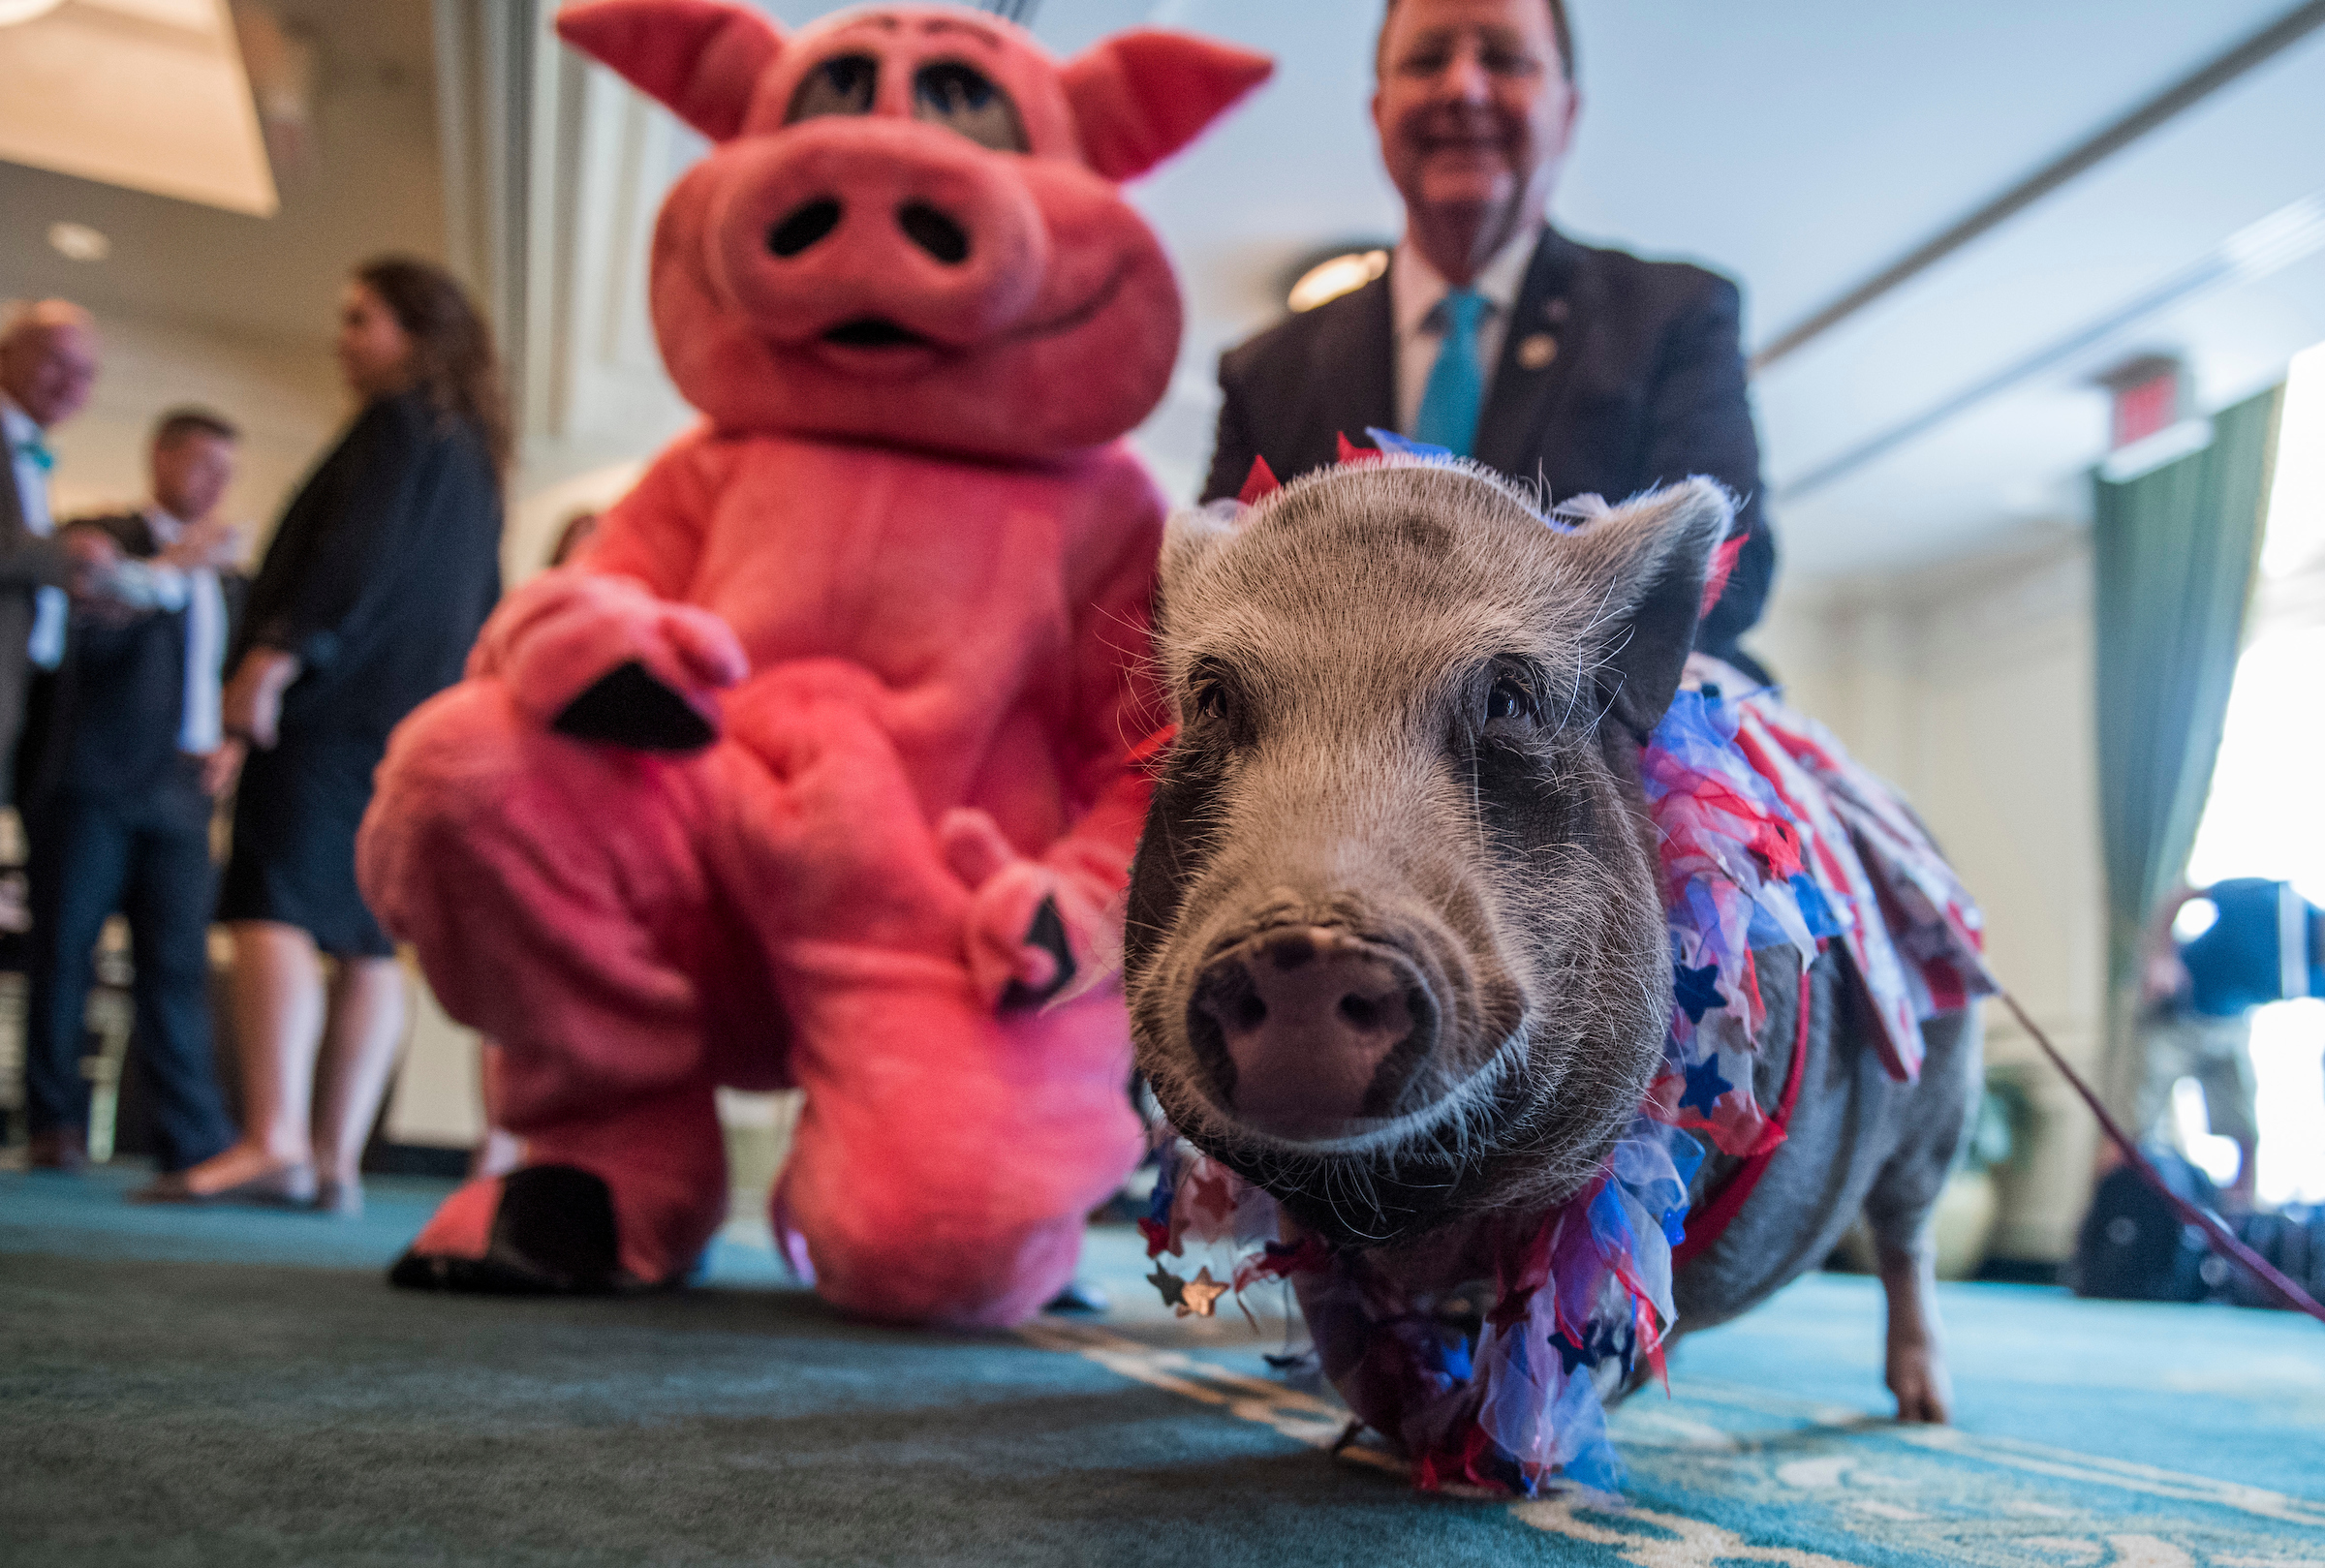 Rep. Bill Flores, R-Texas, poses with Faye, a pot belly pig, after a news conference held by Citizens Against Government Waste at the Phoenix Park Hotel to release the 2017 Congressional Pig Book which identifies pork-barrel spending in Congress on Wednesday. (Tom Williams/CQ Roll Call)